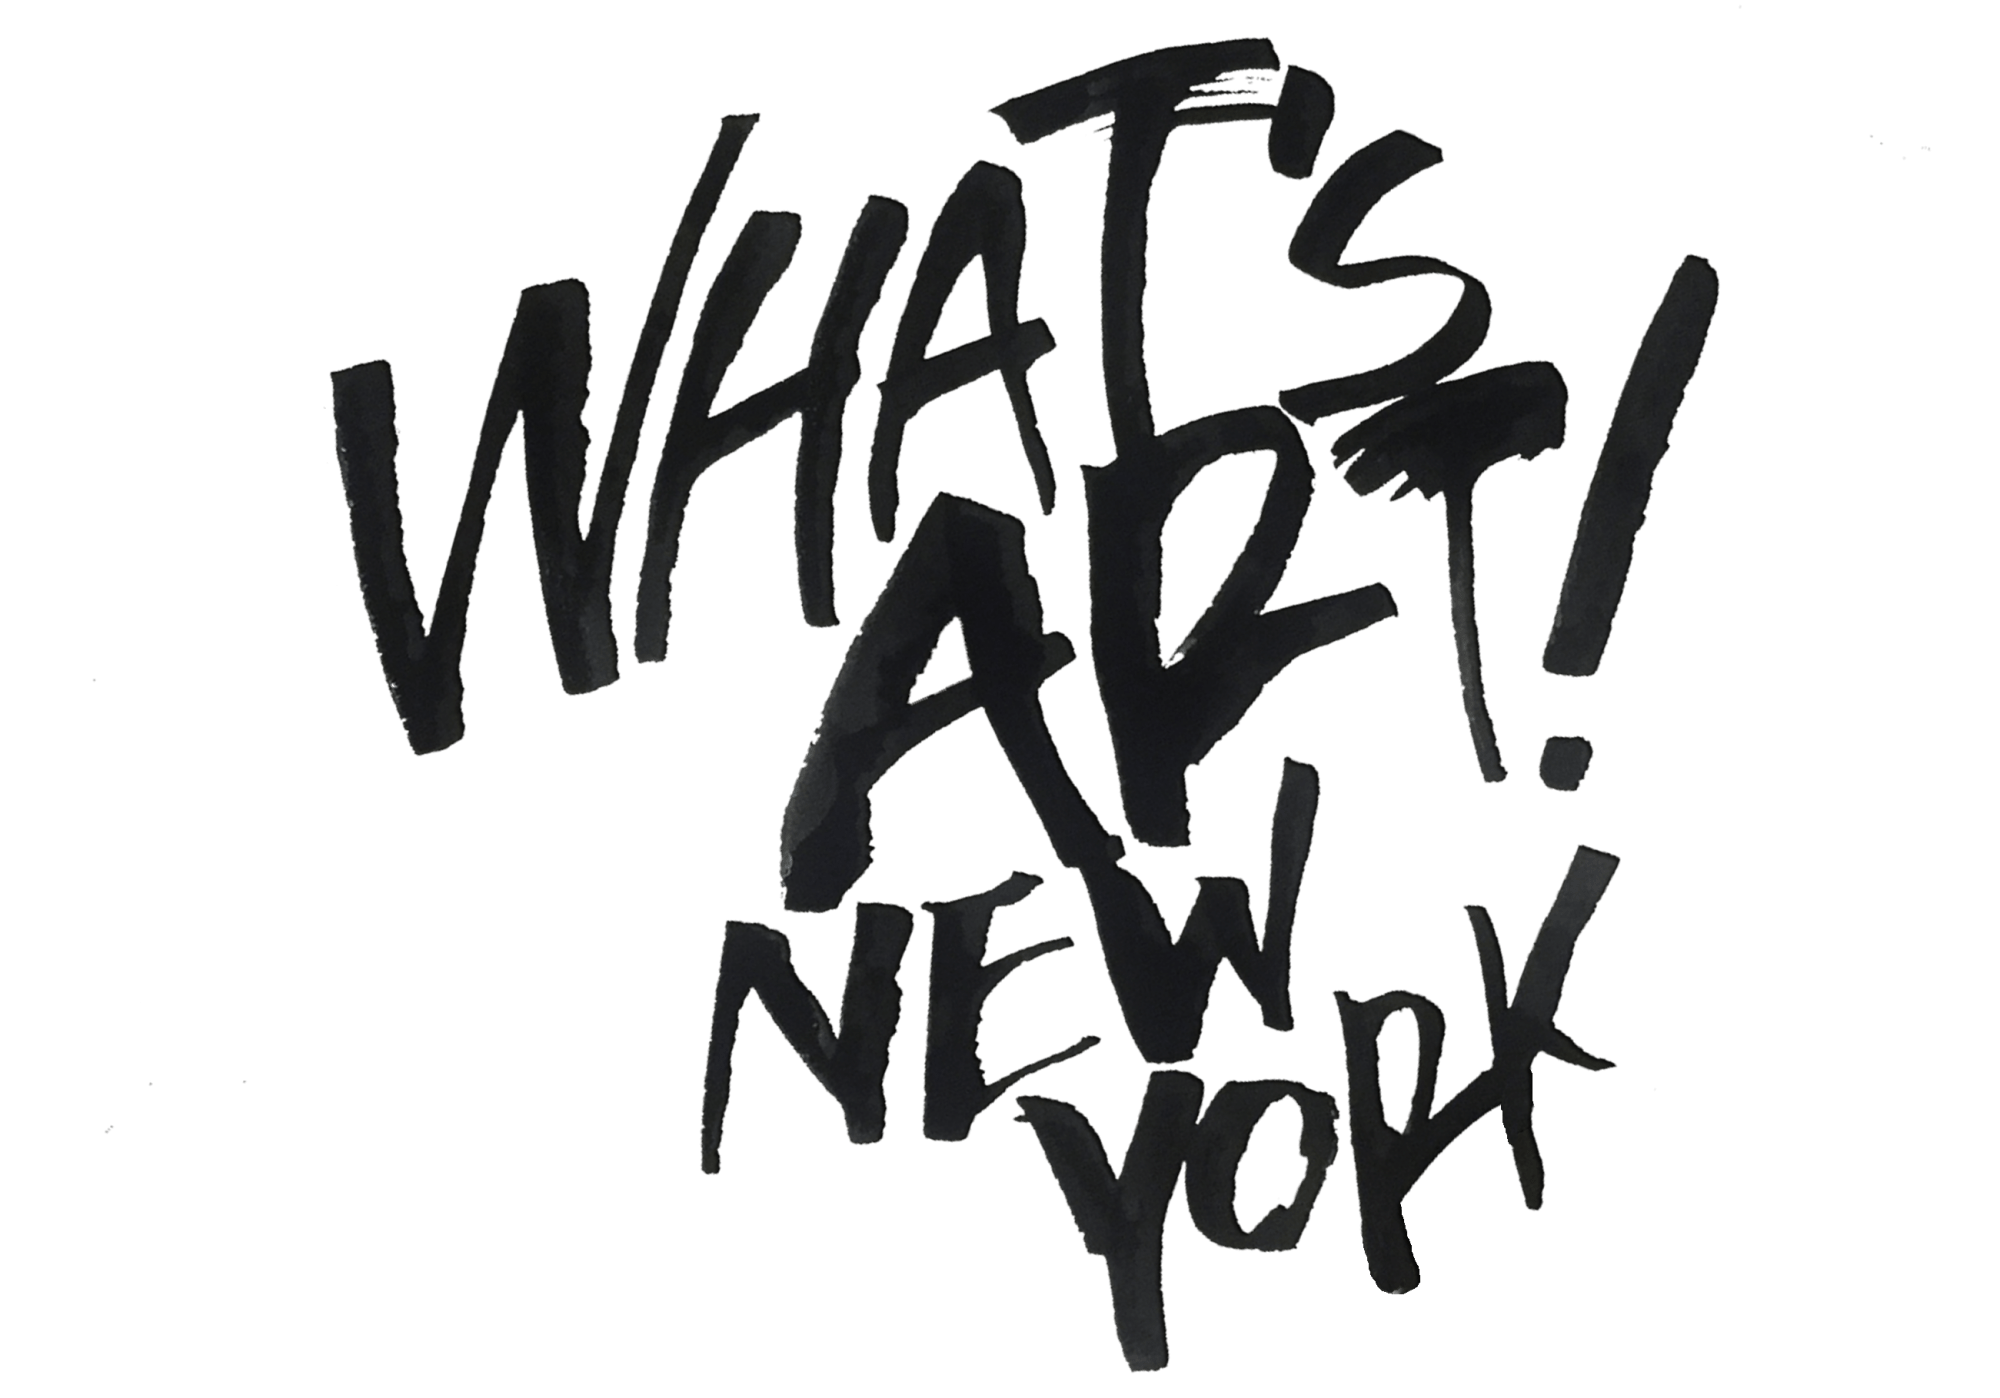 #WHATSARTNYC